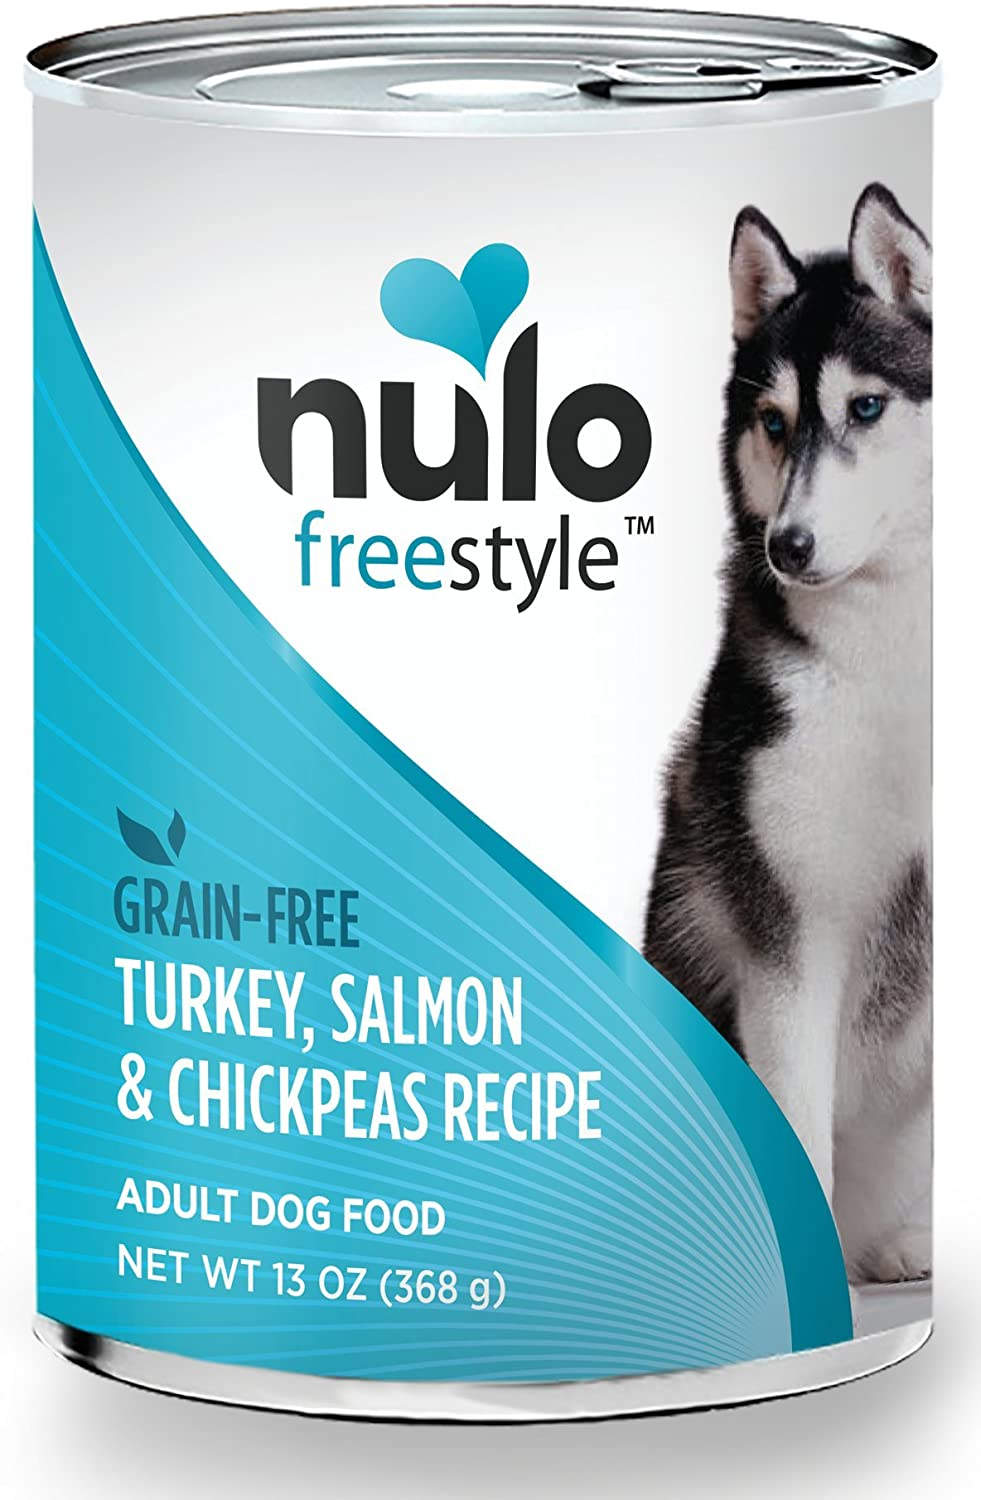 Nulo Grain Free Canned Wet Dog Food (13 oz, Salmon)  12 Cans